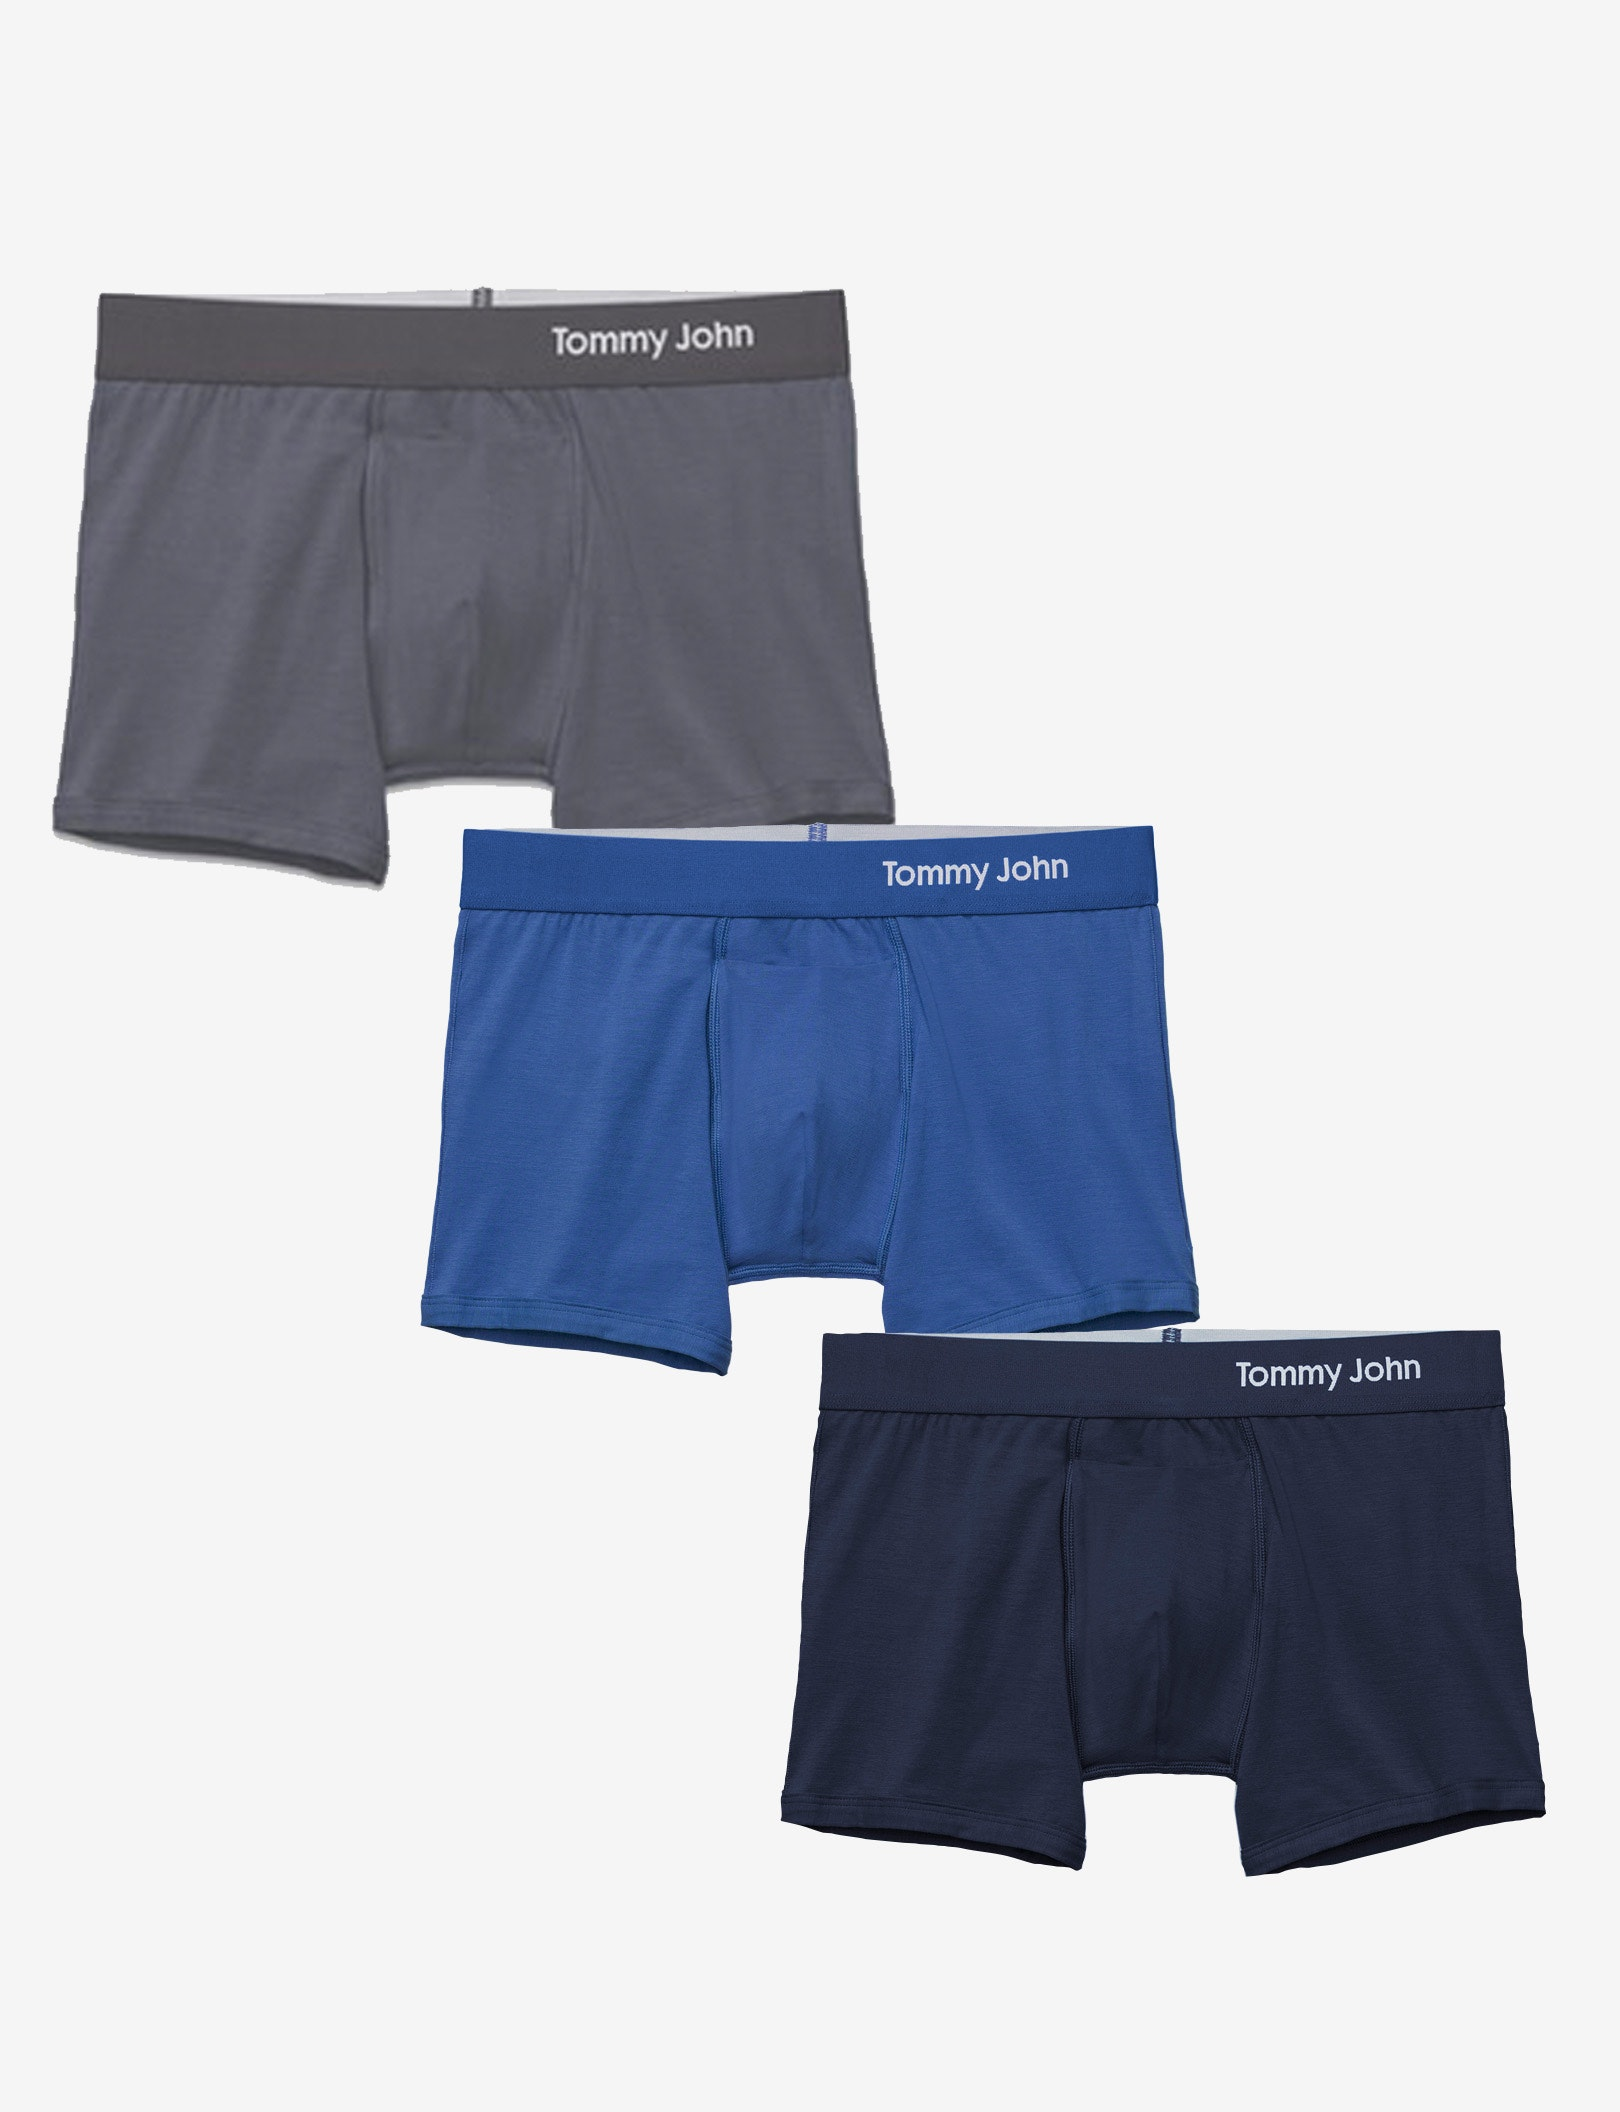 Image of Cool Cotton Trunk 3 Pack